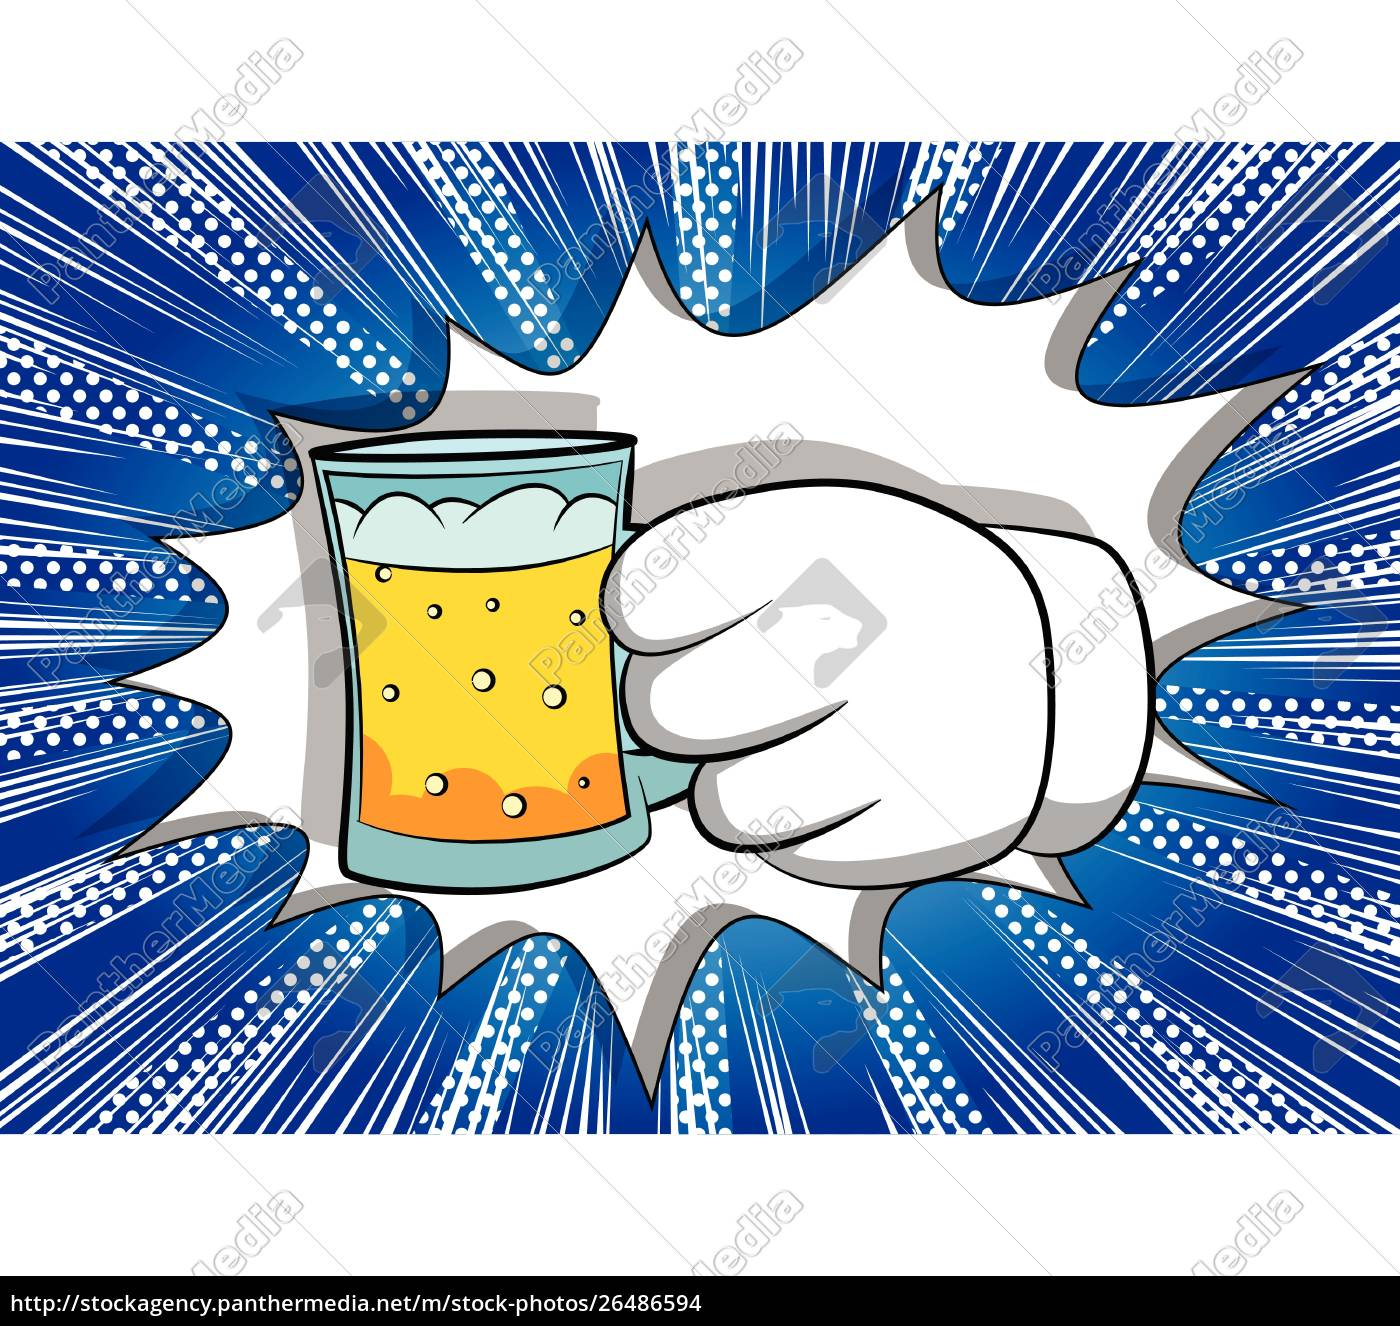 cartoon, hands, holding, a, beer. - 26486594